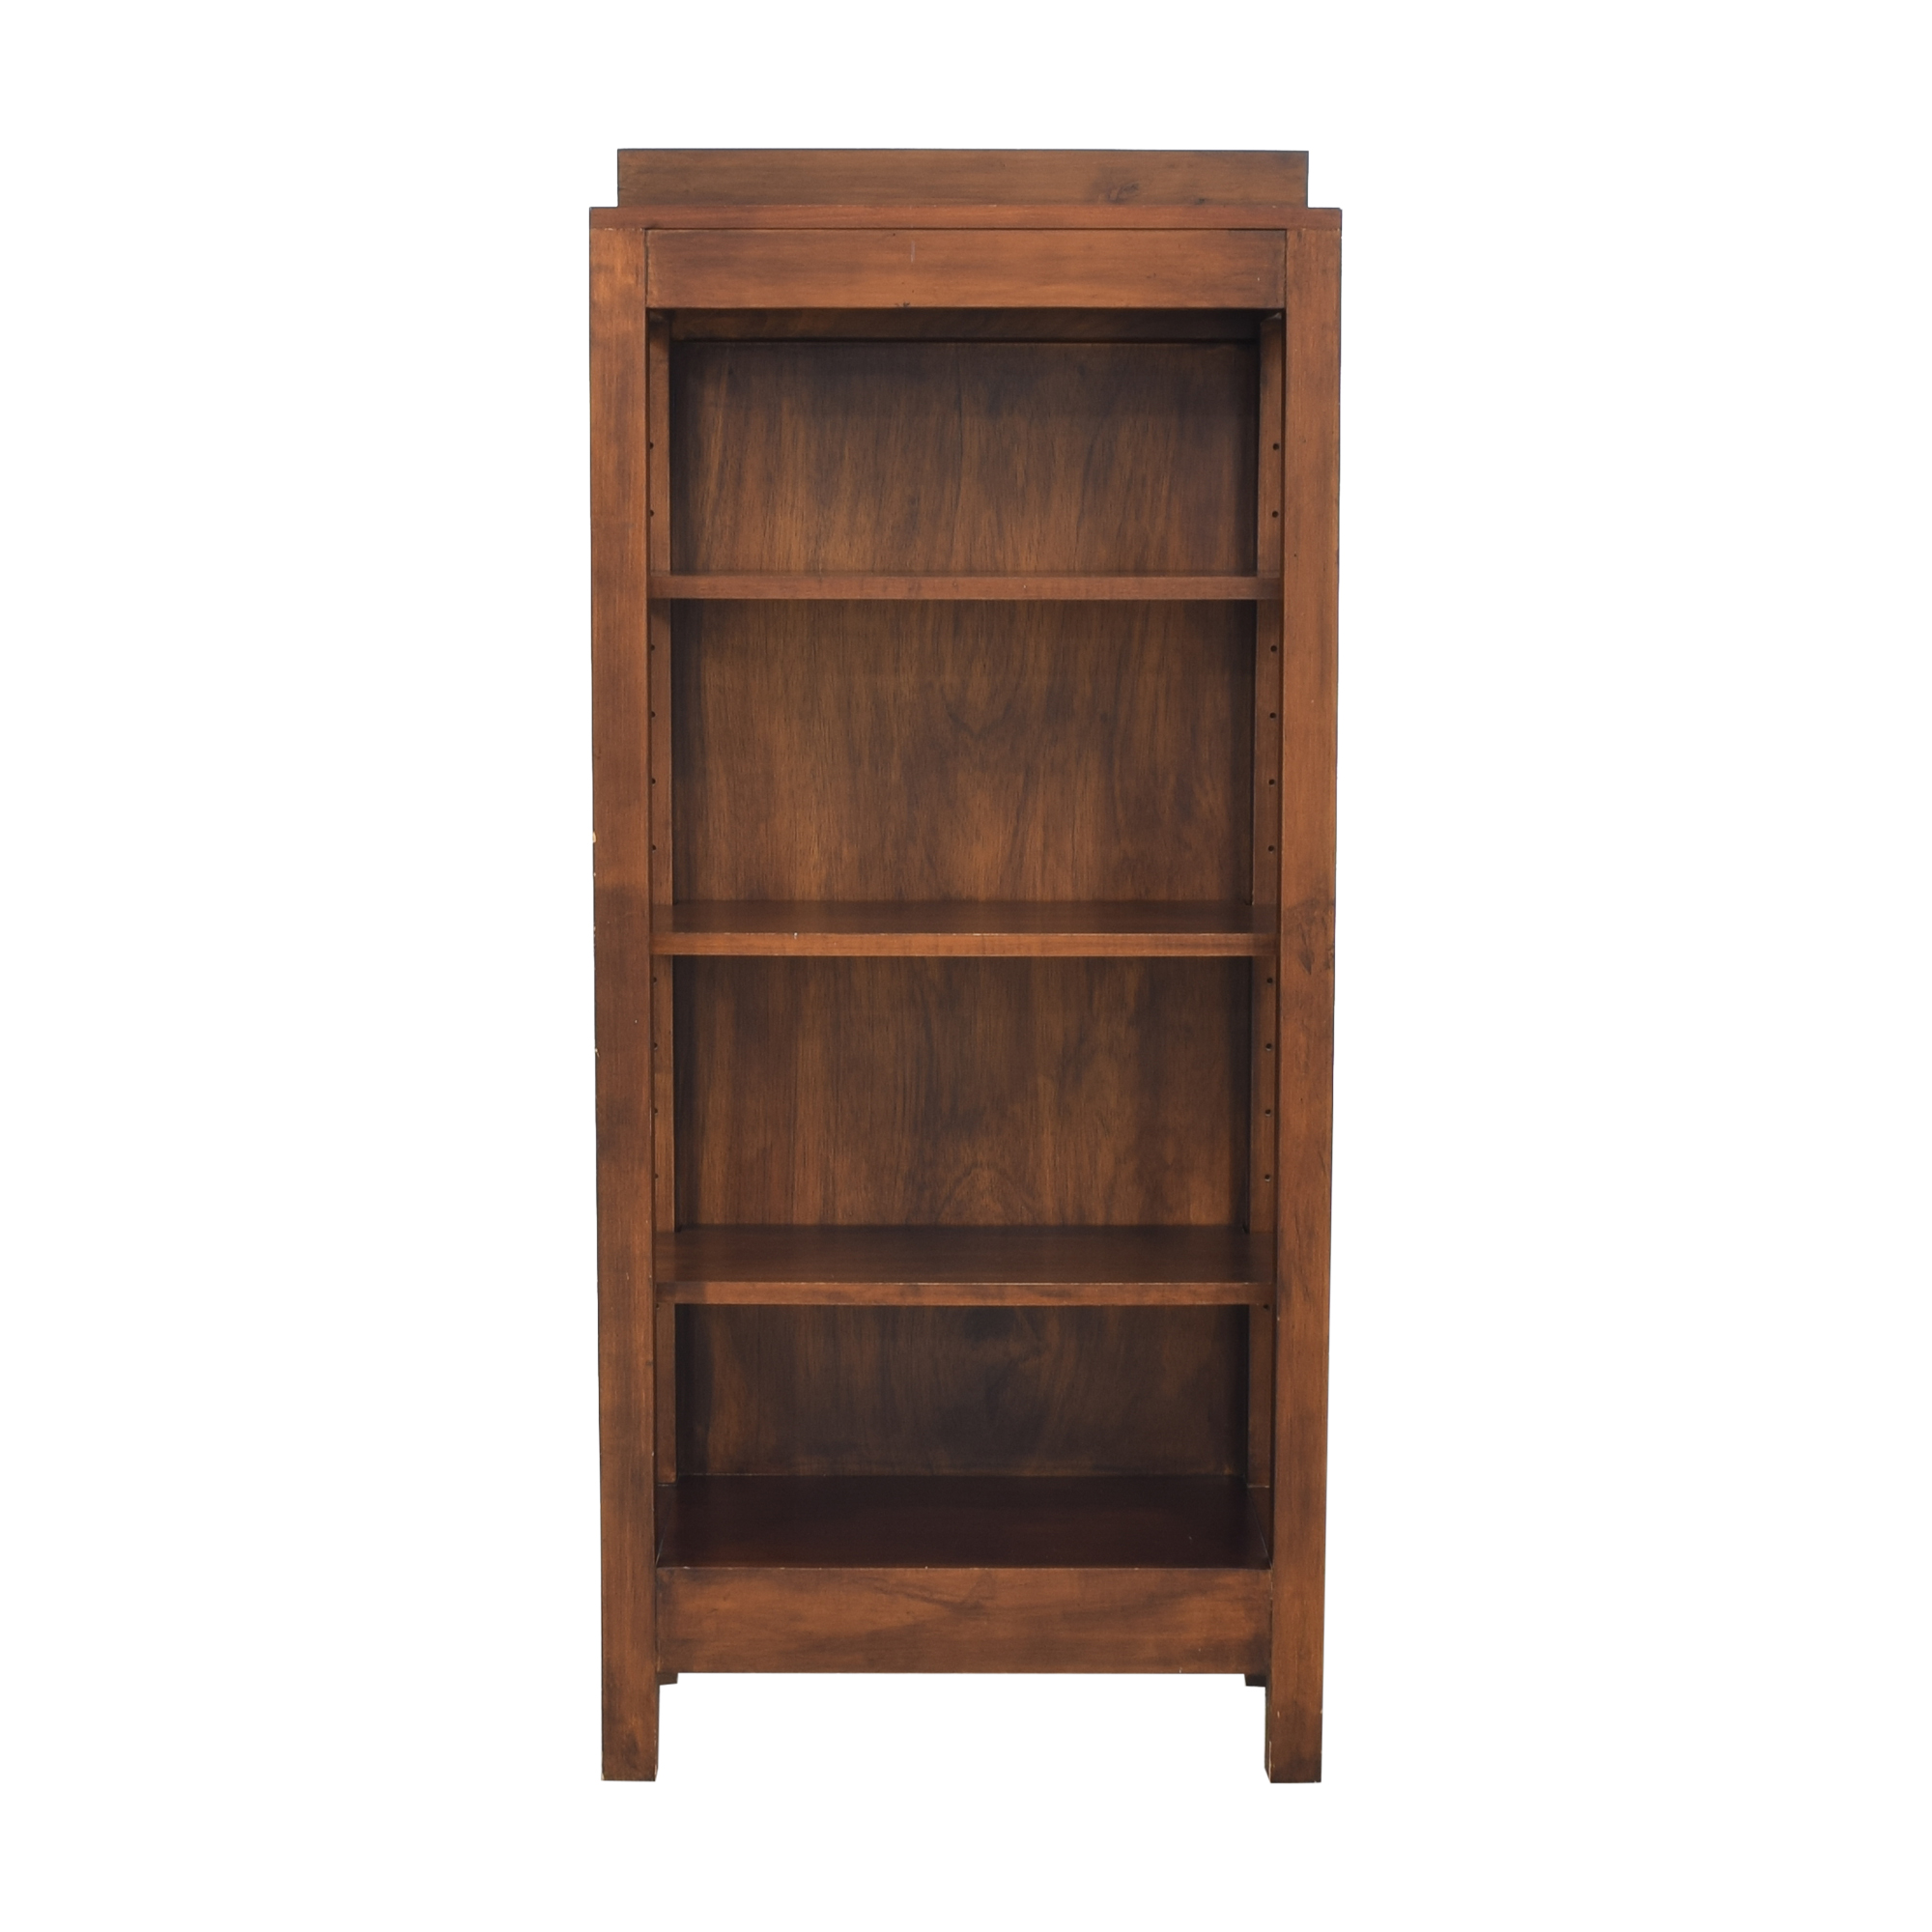 Romweber Romweber by Jim Peed Modern Bookcase price